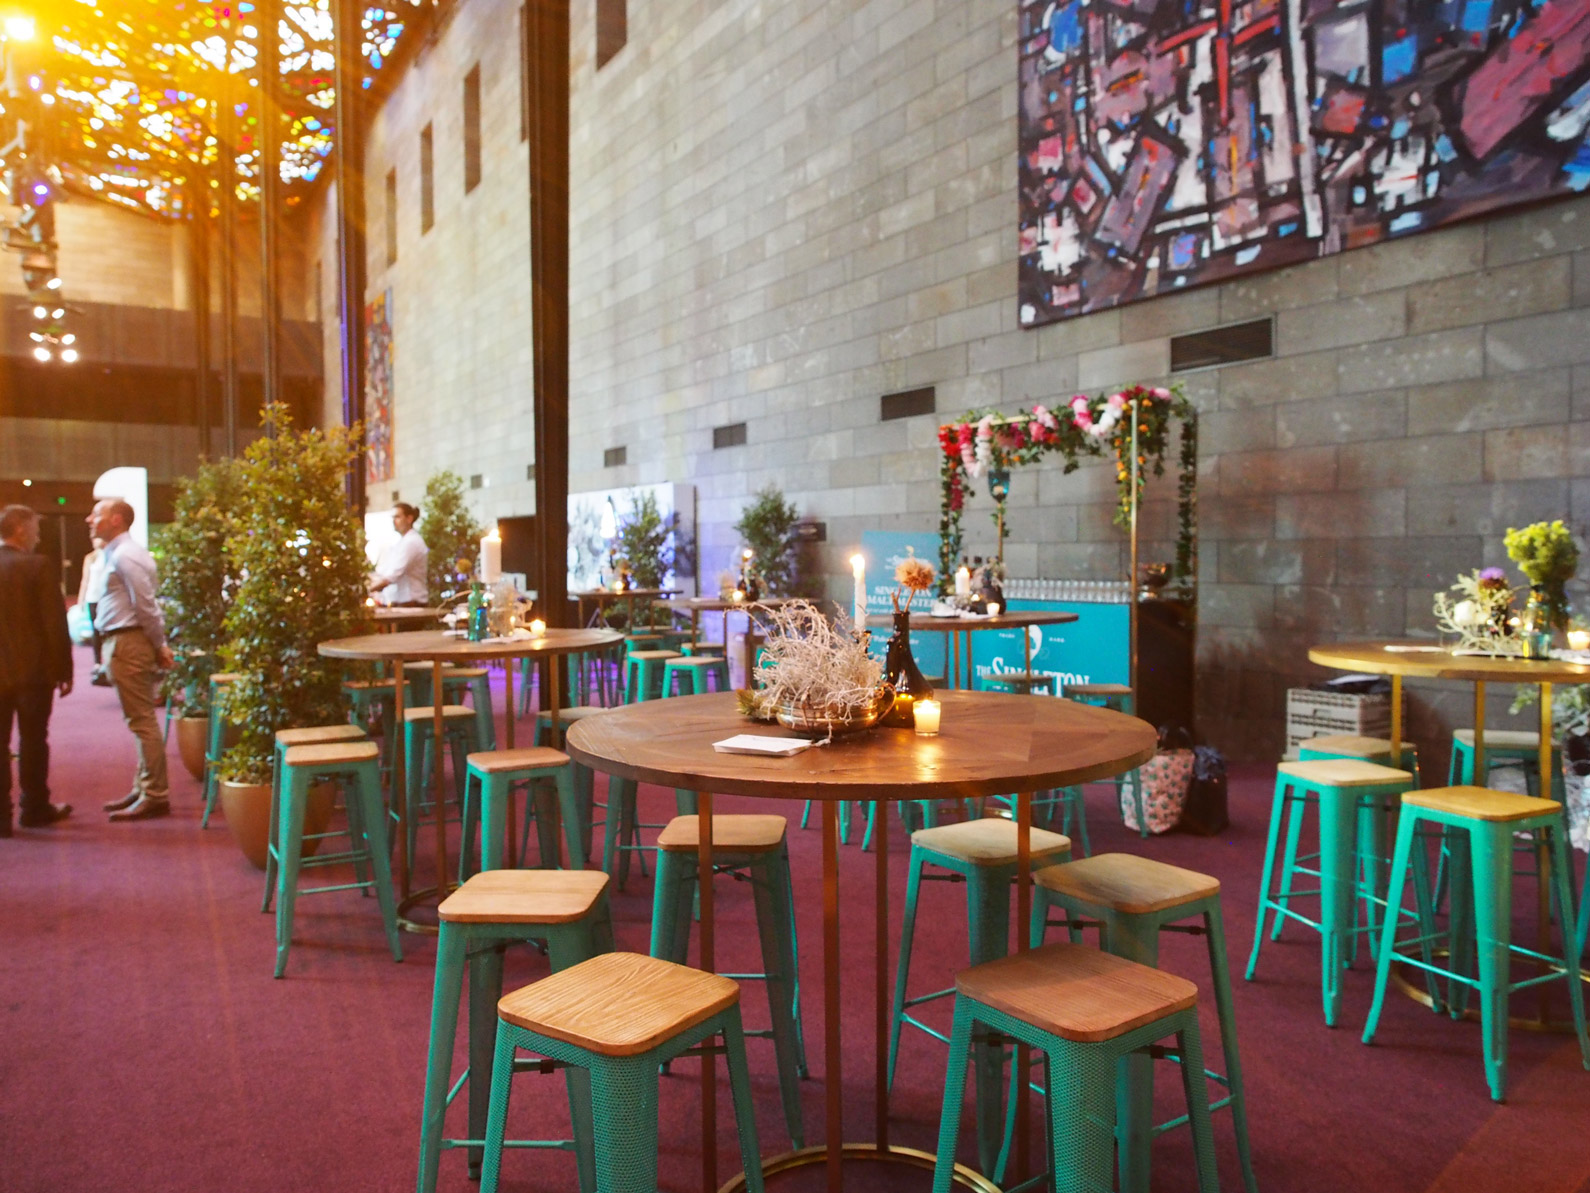 Studio-Mimi-Moon-Styling-at-NGV-for-Dan-Murpheys-Conference-Singleton-Whisky-and-Johnny-Walker-White-Walker-Limited-Edition-Bar-event-FEATURE-IMAGE